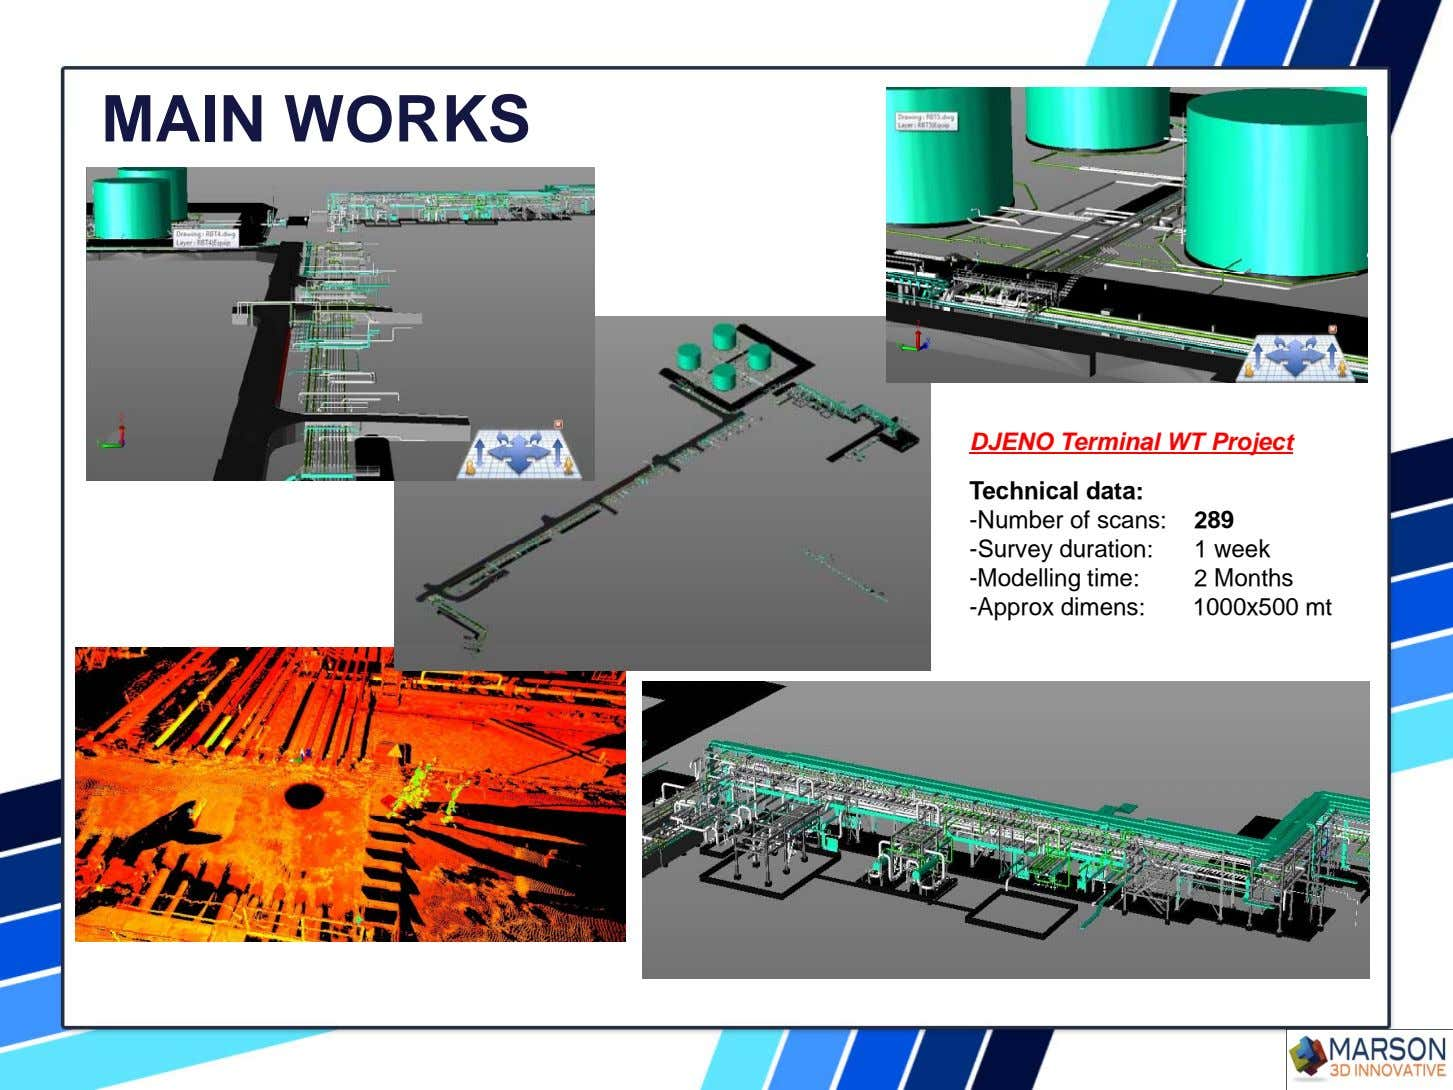 MAIN WORKS DJENO Terminal WT Project Technical data: -Number of scans: 289 -Survey duration: 1